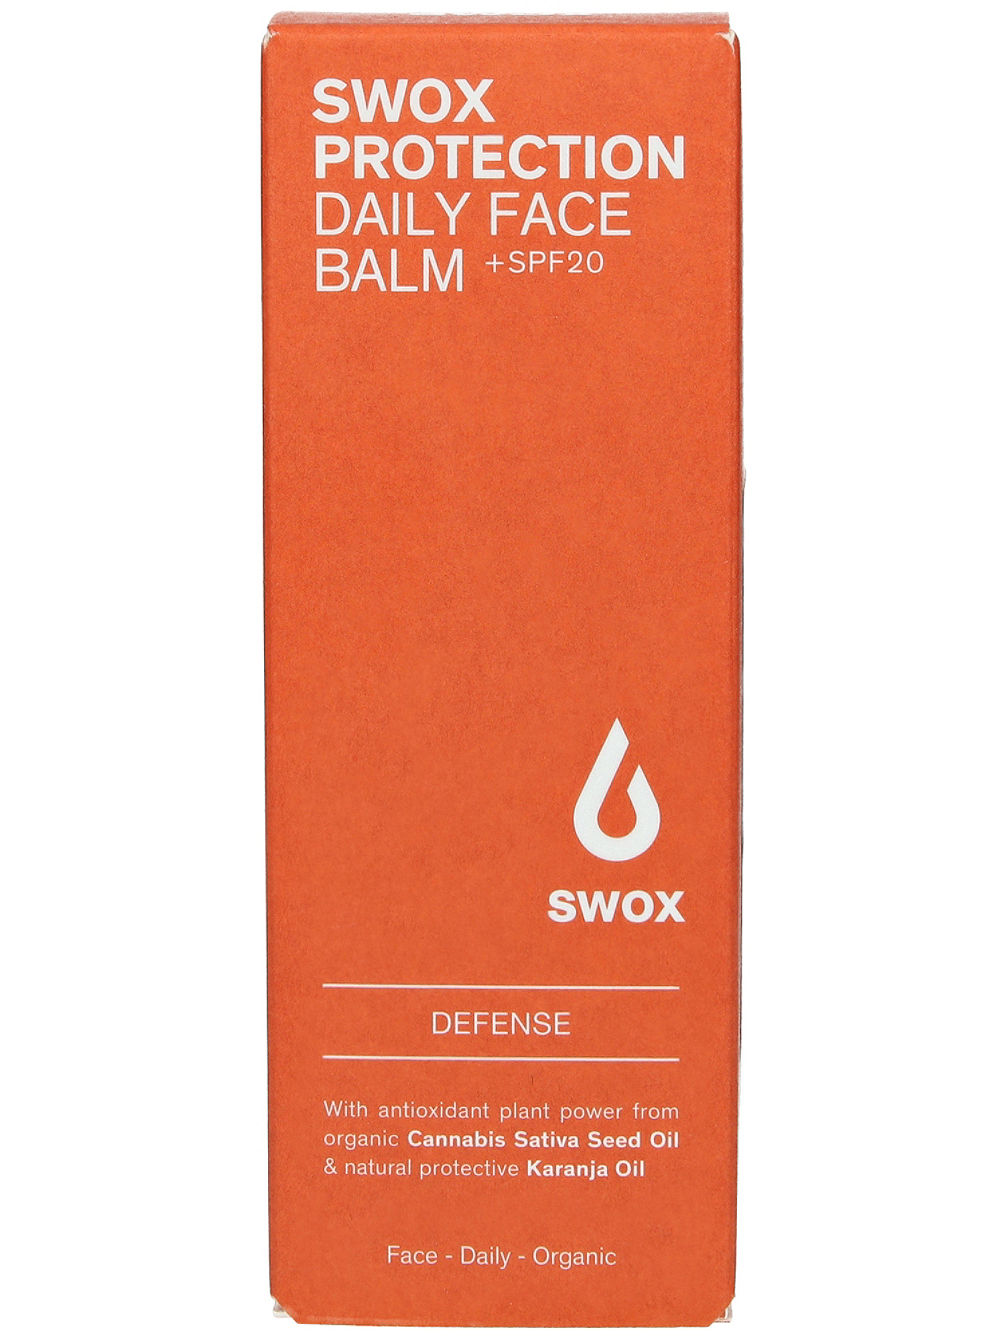 Daily Face Balm Defense SPF 20 50ml Krema za Son?enje